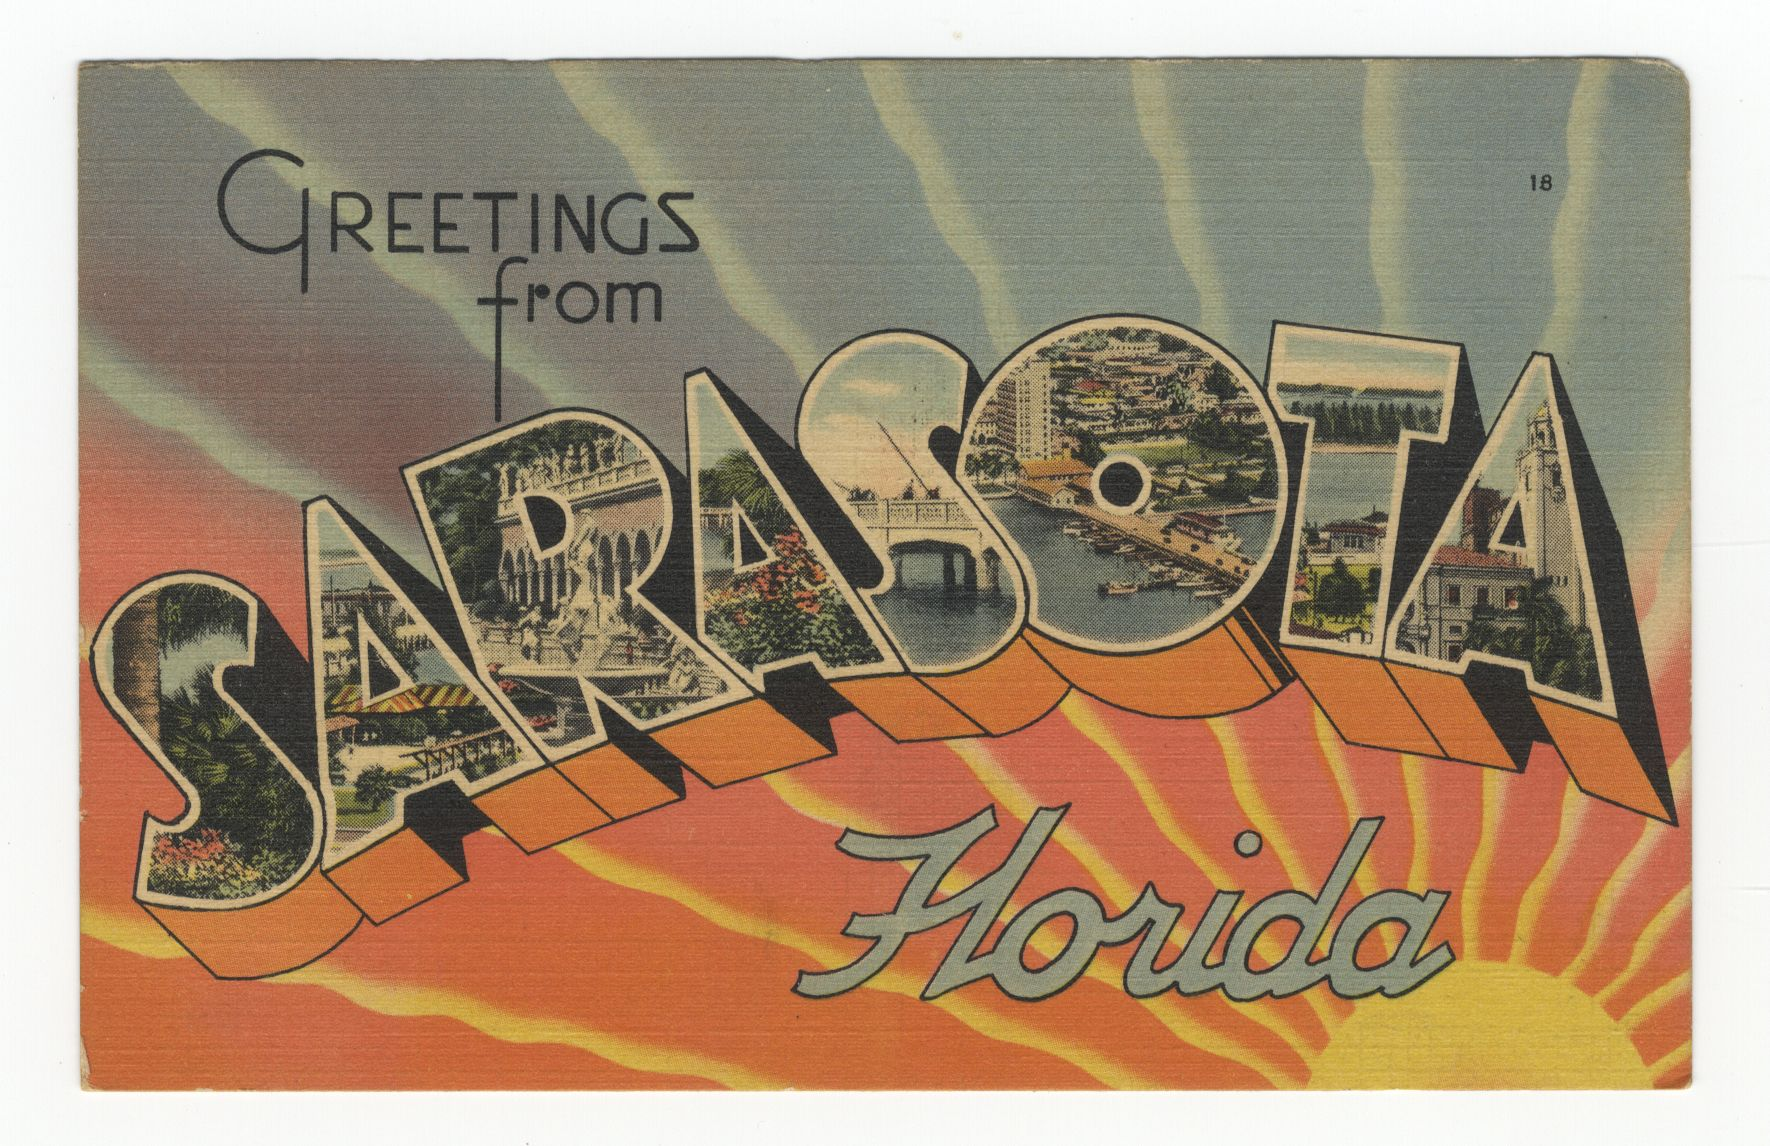 Greetings from sarasota florida vintage postcard vintage linen postcard greetings from sarasota florida the air conditioned city ca 1950 kristyandbryce Image collections